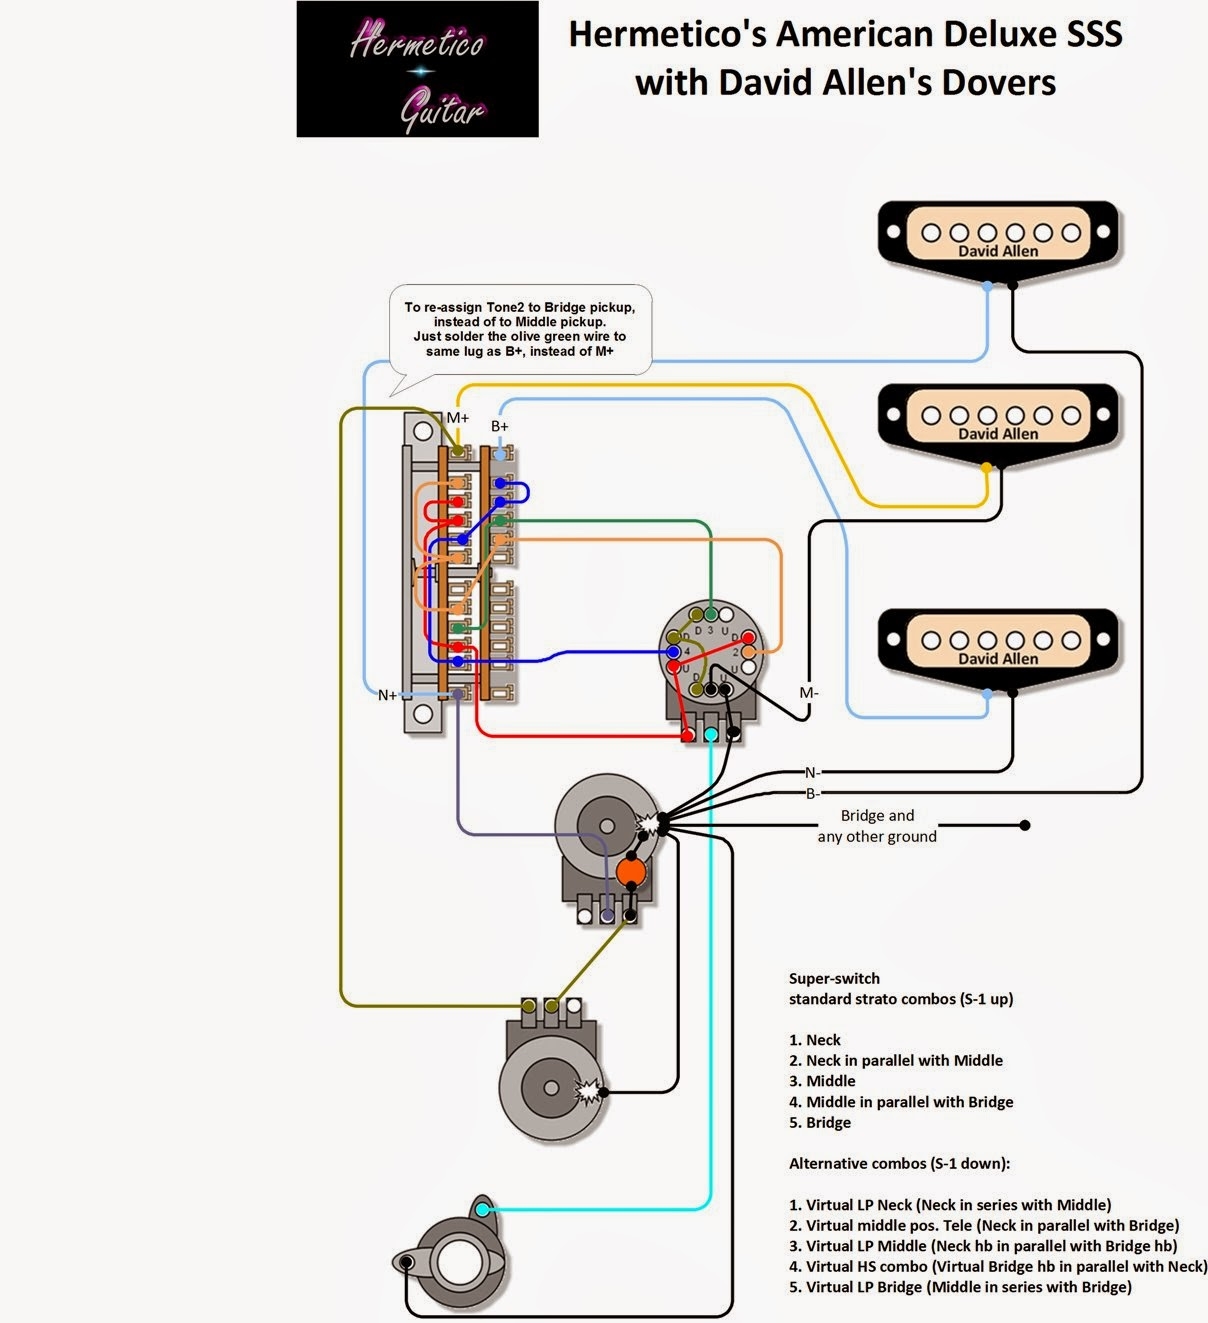 fender sss wiring diagram wiring libraryhermetico guitar fender american deluxe sss (2010 model) a succesfully mod story